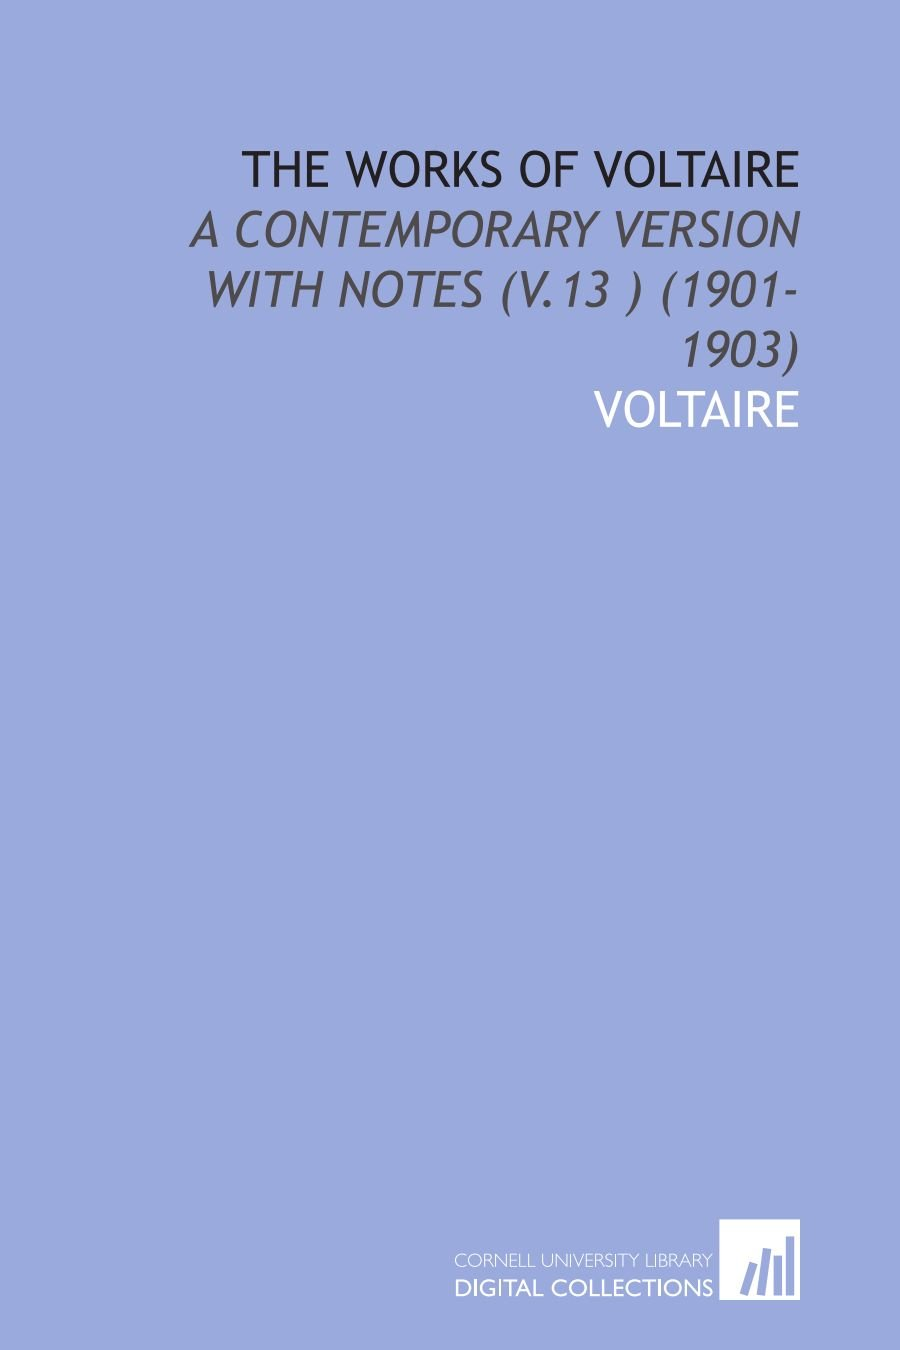 The Works of Voltaire: A Contemporary Version With Notes (V.13 ) (1901-1903) PDF